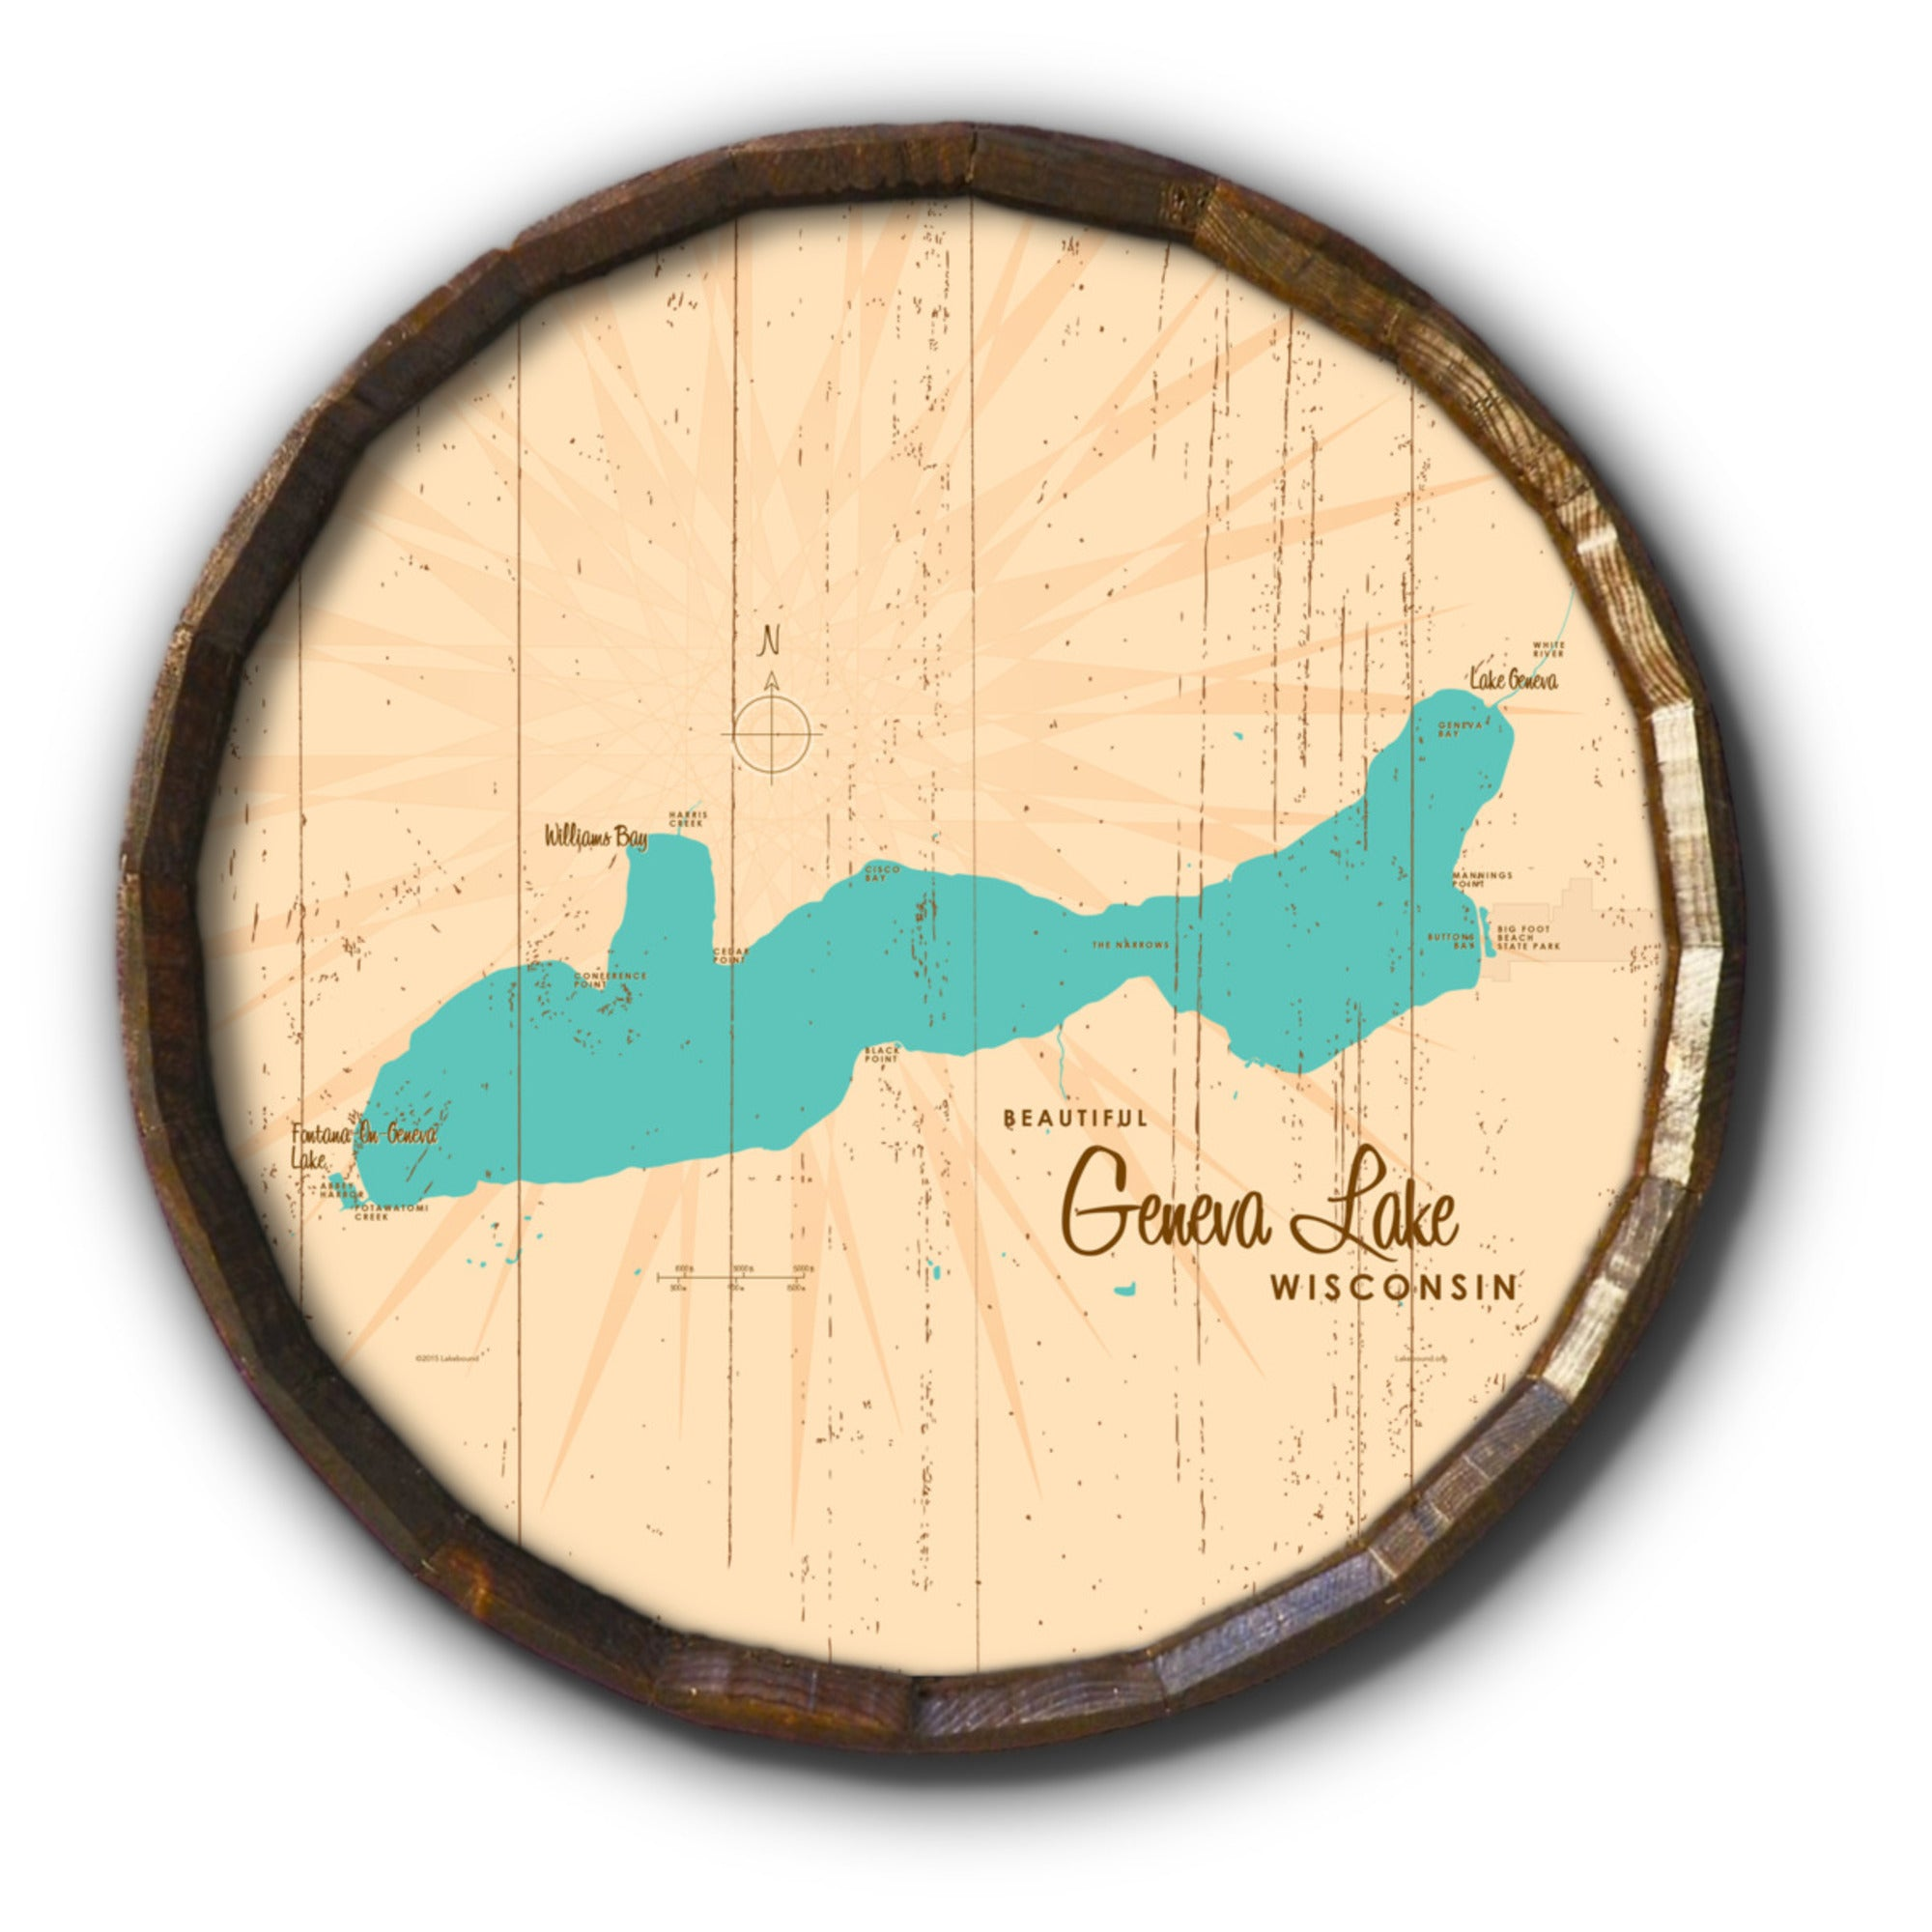 Geneva Lake Wisconsin, Rustic Barrel End Map Art